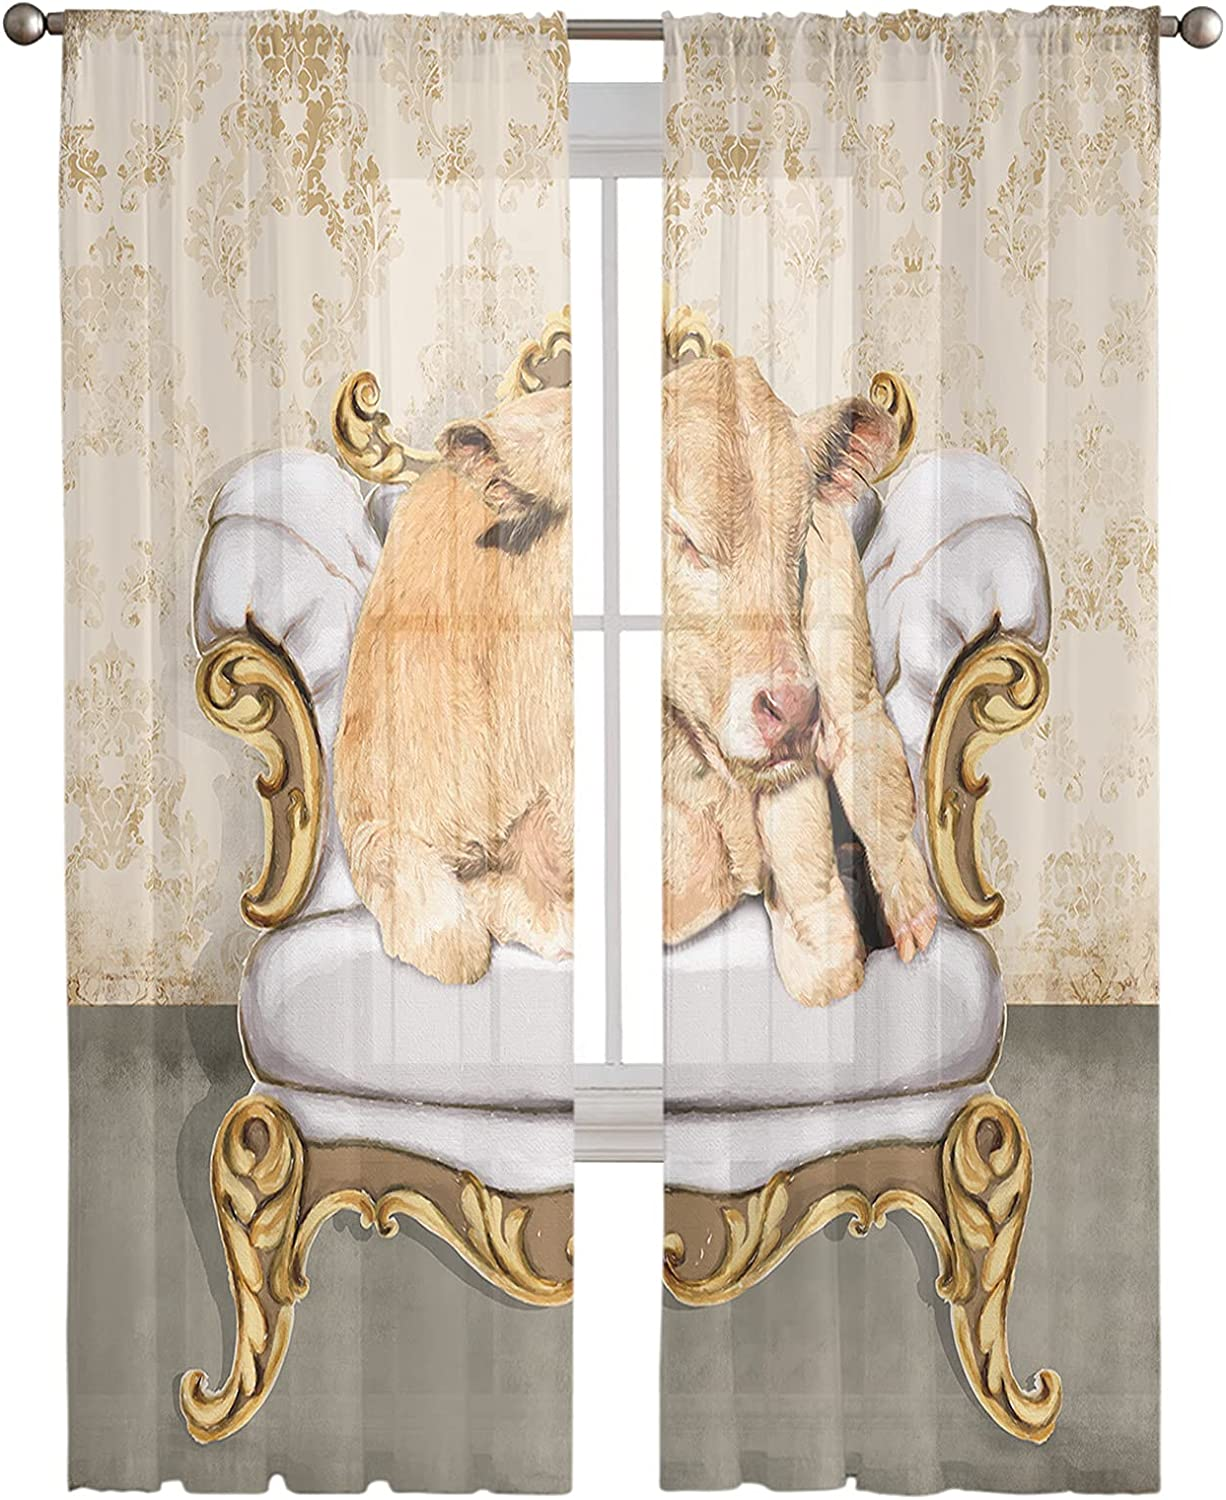 Animal Sheer Curtains 2 Panels Cheap bargain Window Drapes Rod Max 66% OFF S Pocket with